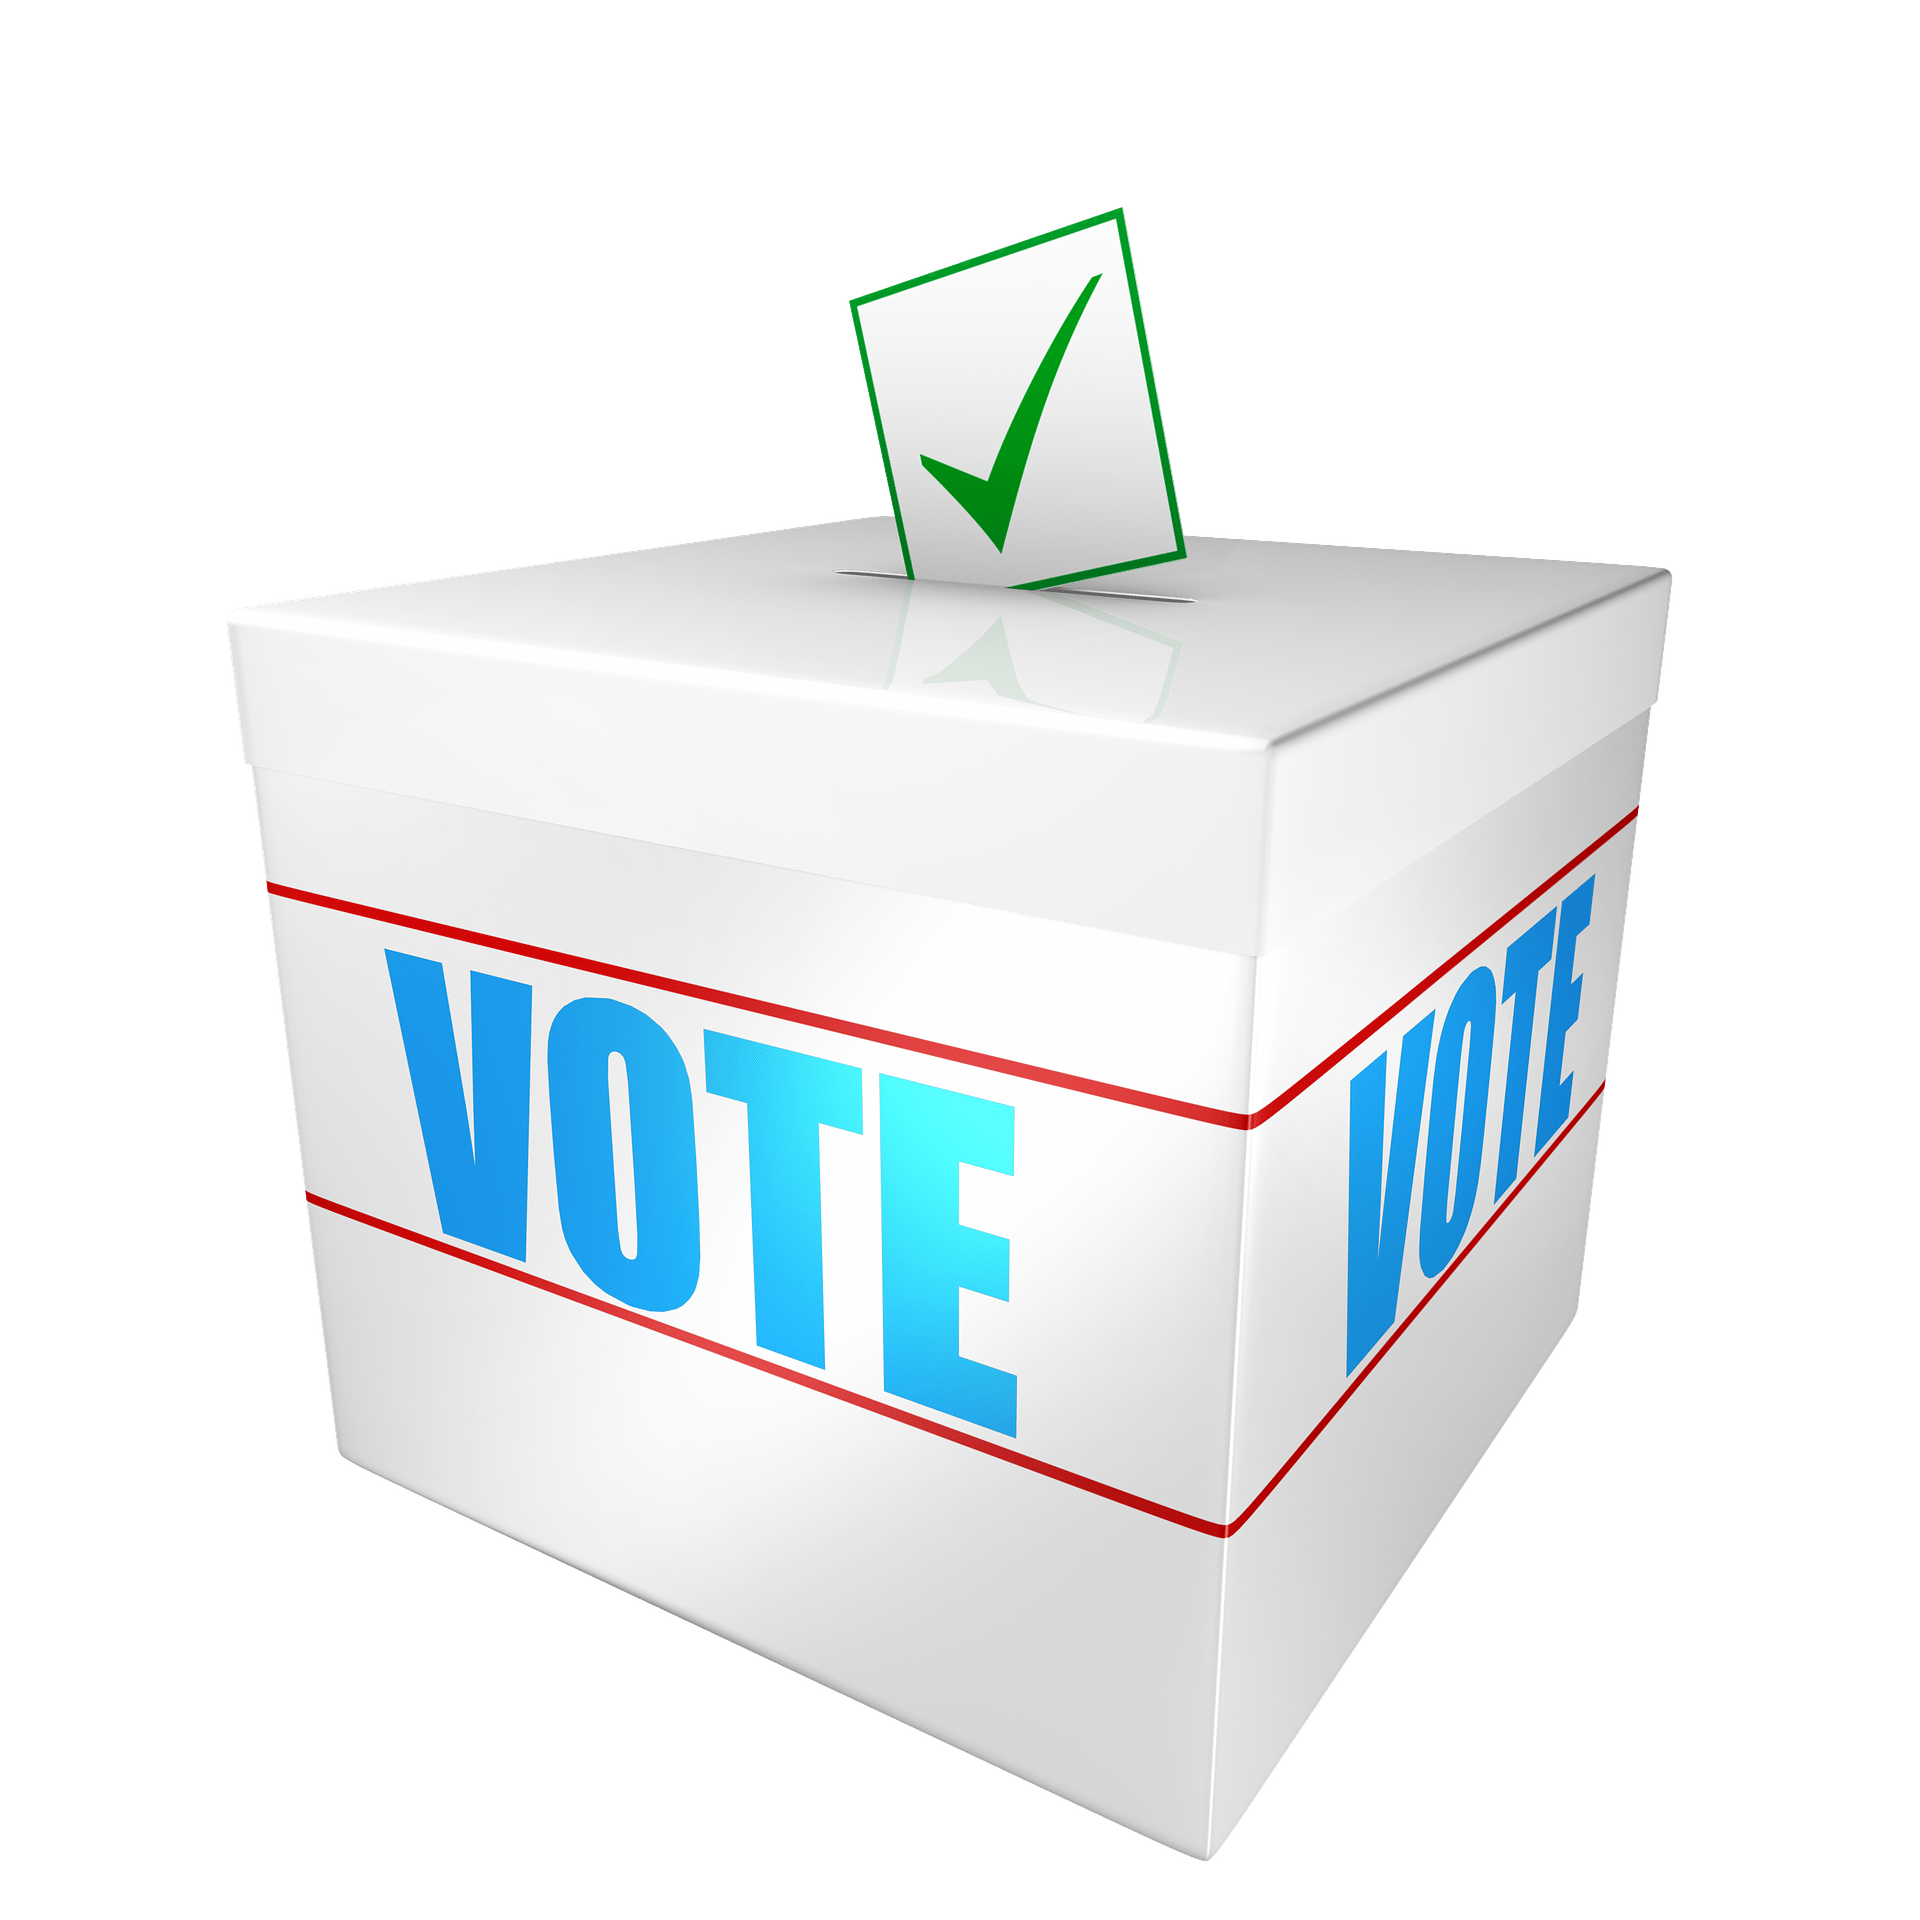 Voting clipart presidential election. Vote now in the